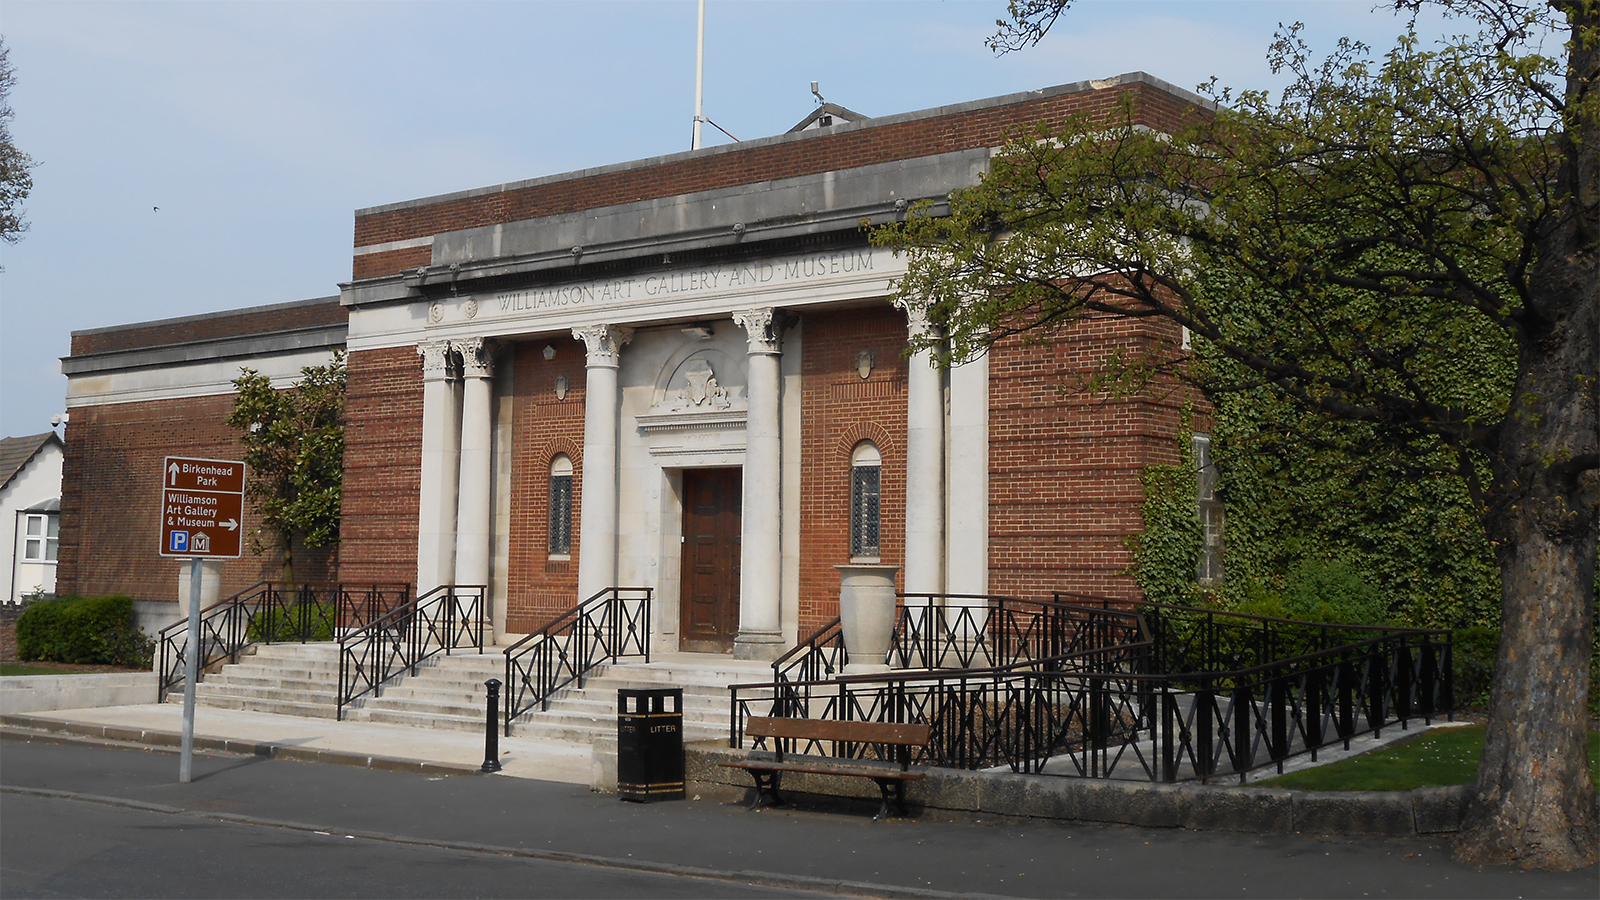 Williamson Art Gallery and Museum in Birkenhead is at risk of closure